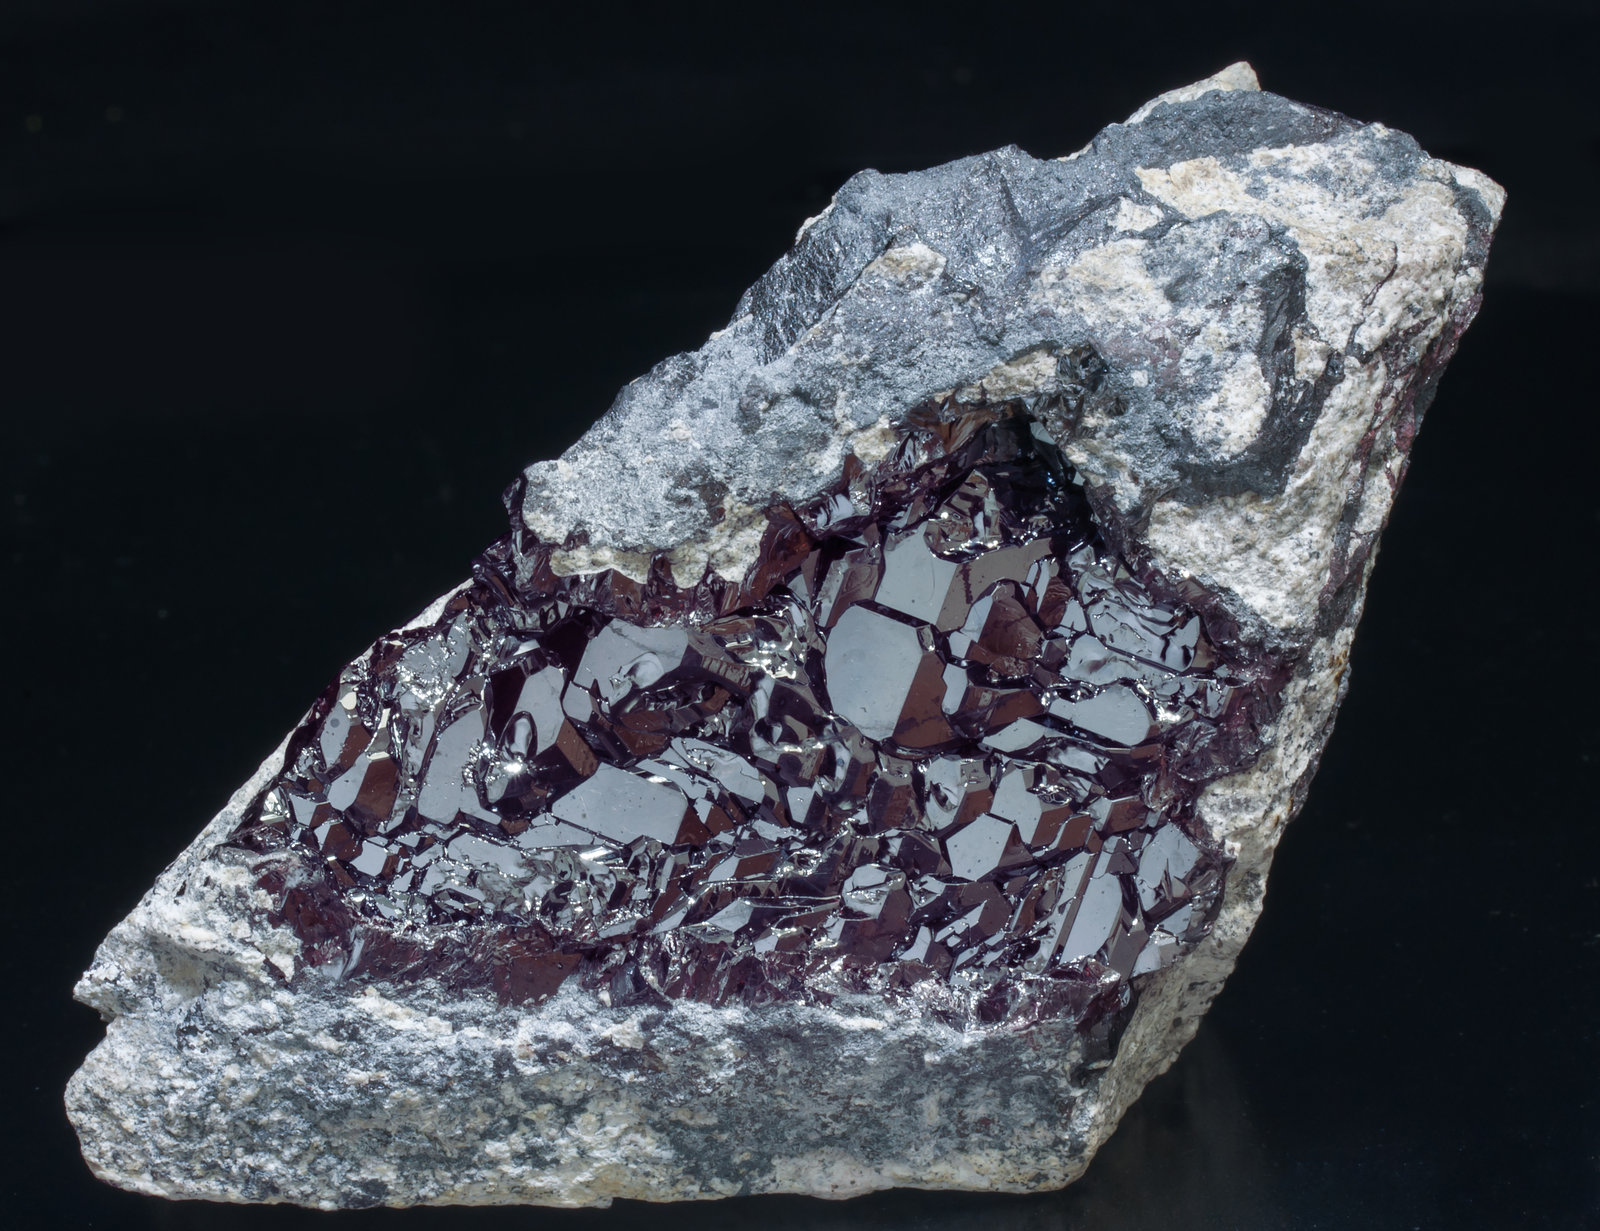 specimens/s_imagesAD2/Cuprite-TH56AD2f.jpg